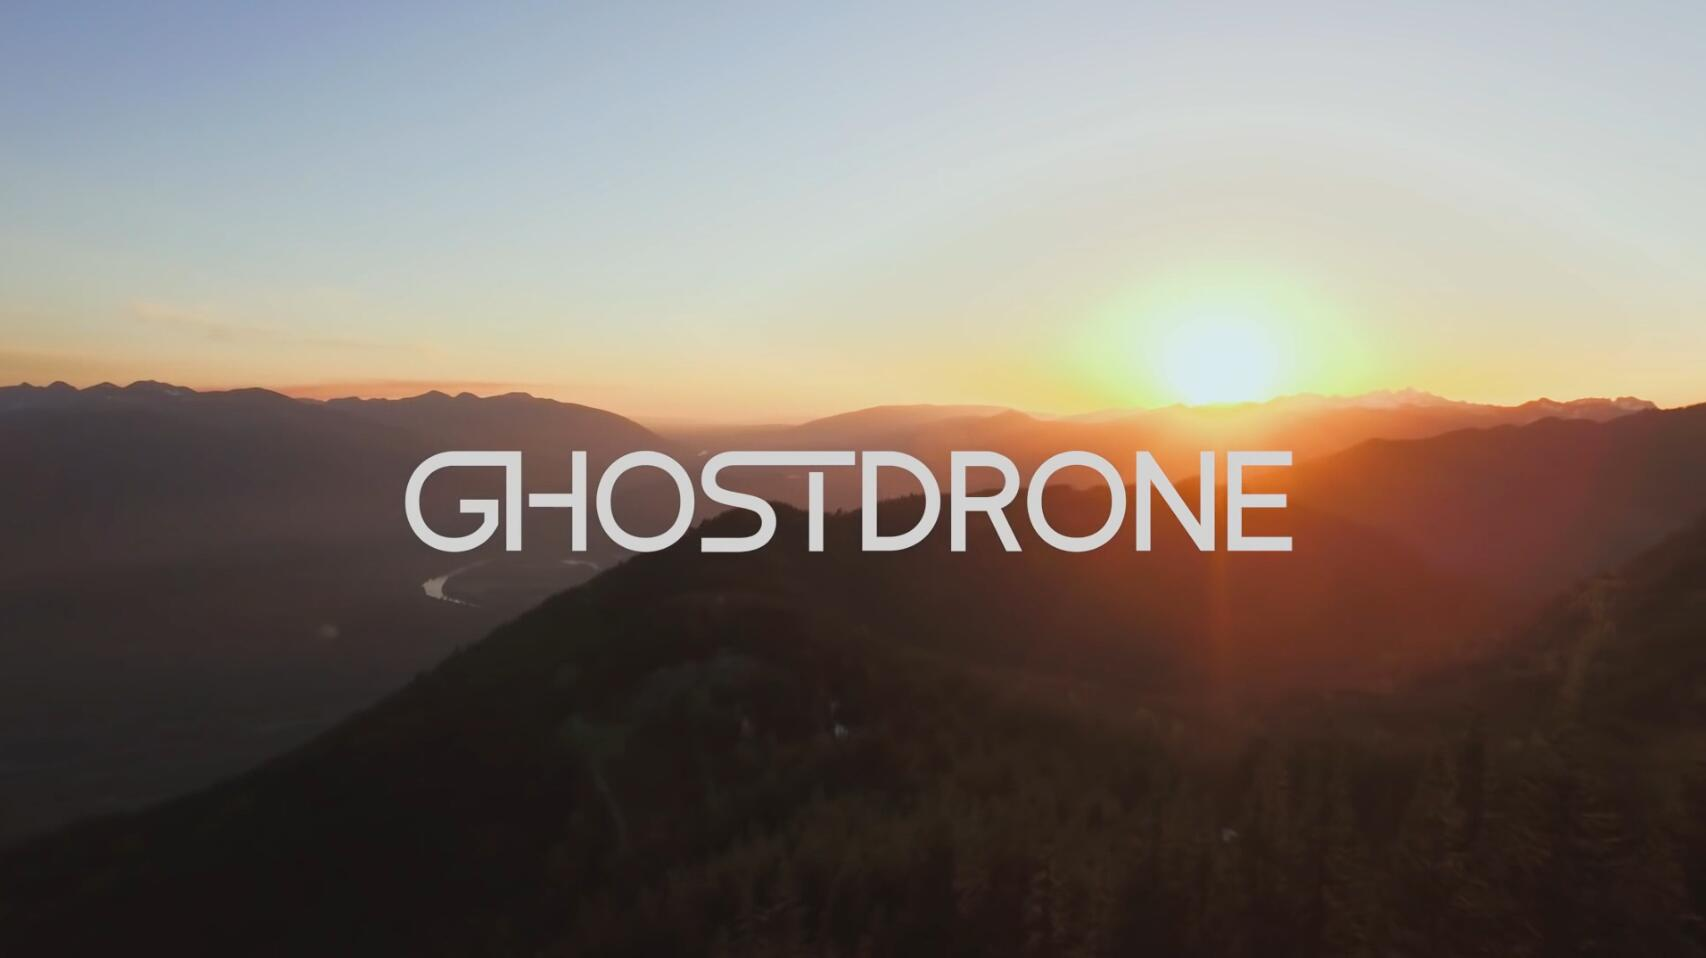 GHOSTDRONE 2.0-The Wilderness Awaits